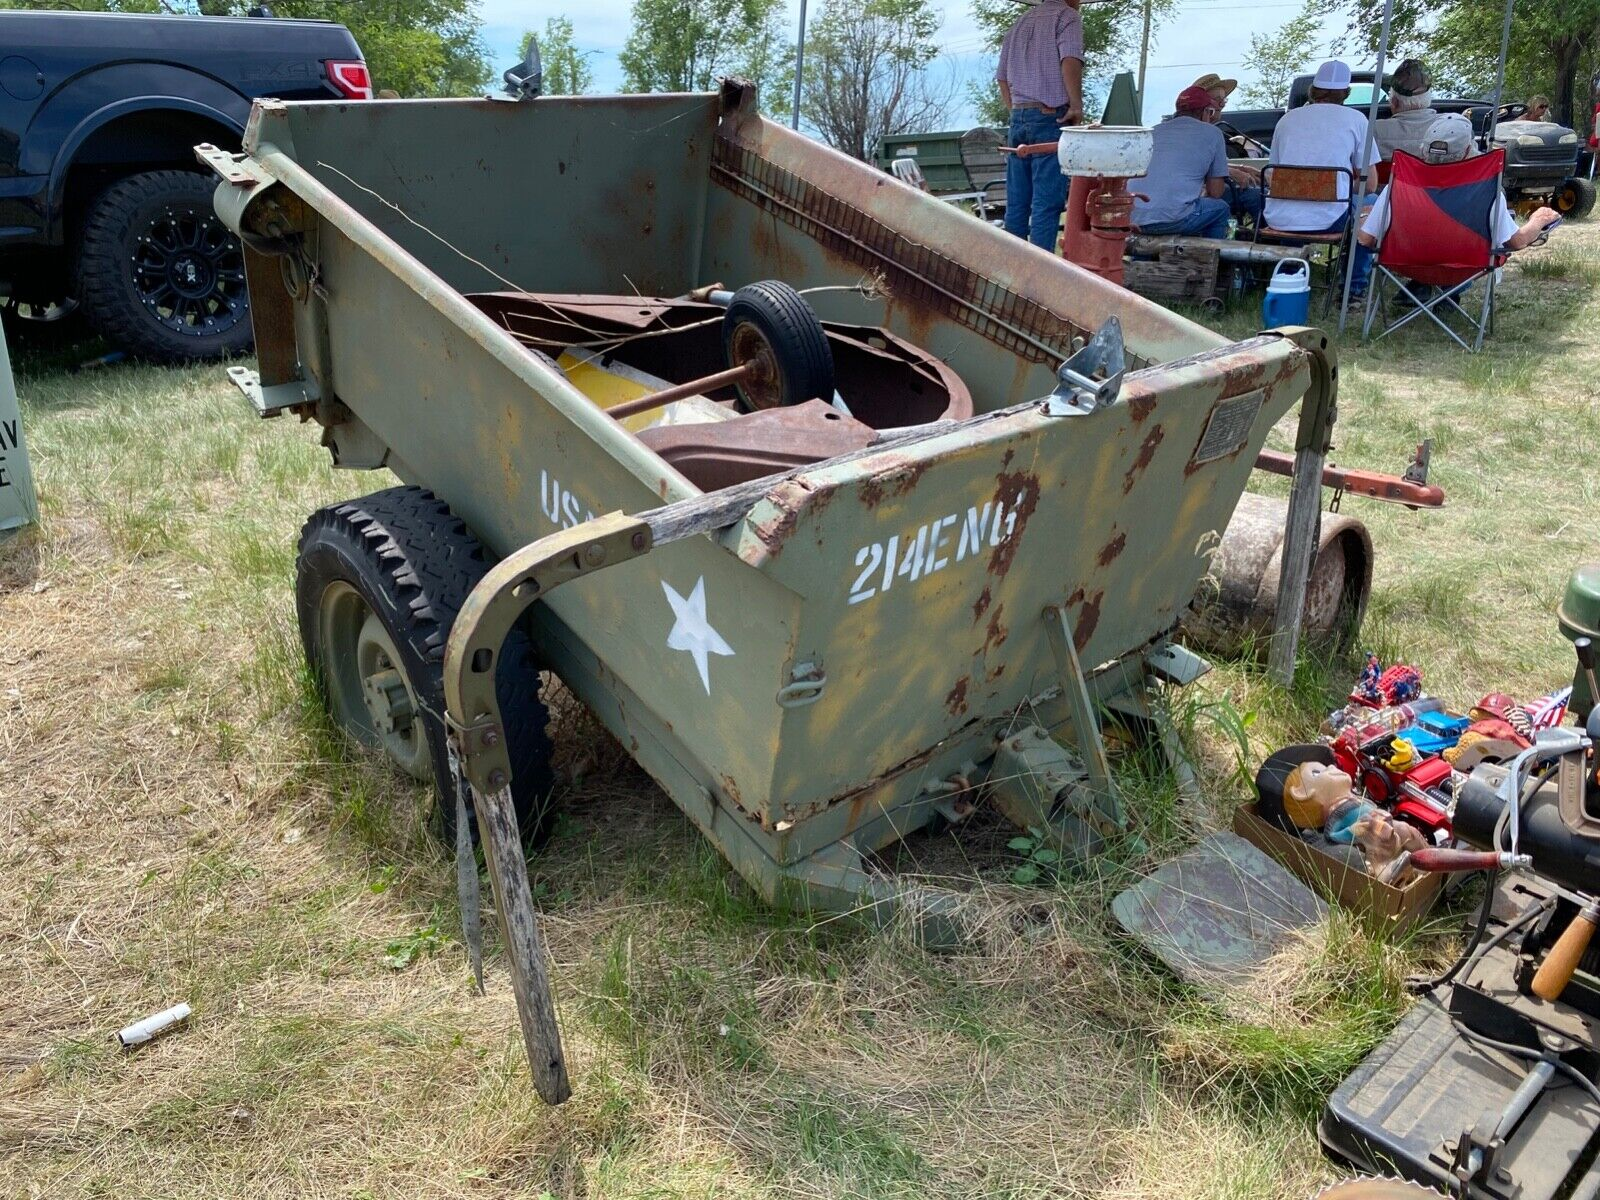 WWII US ARMY JEEP AIRBORNE 1944 CONVERTO DUMP TRAILER